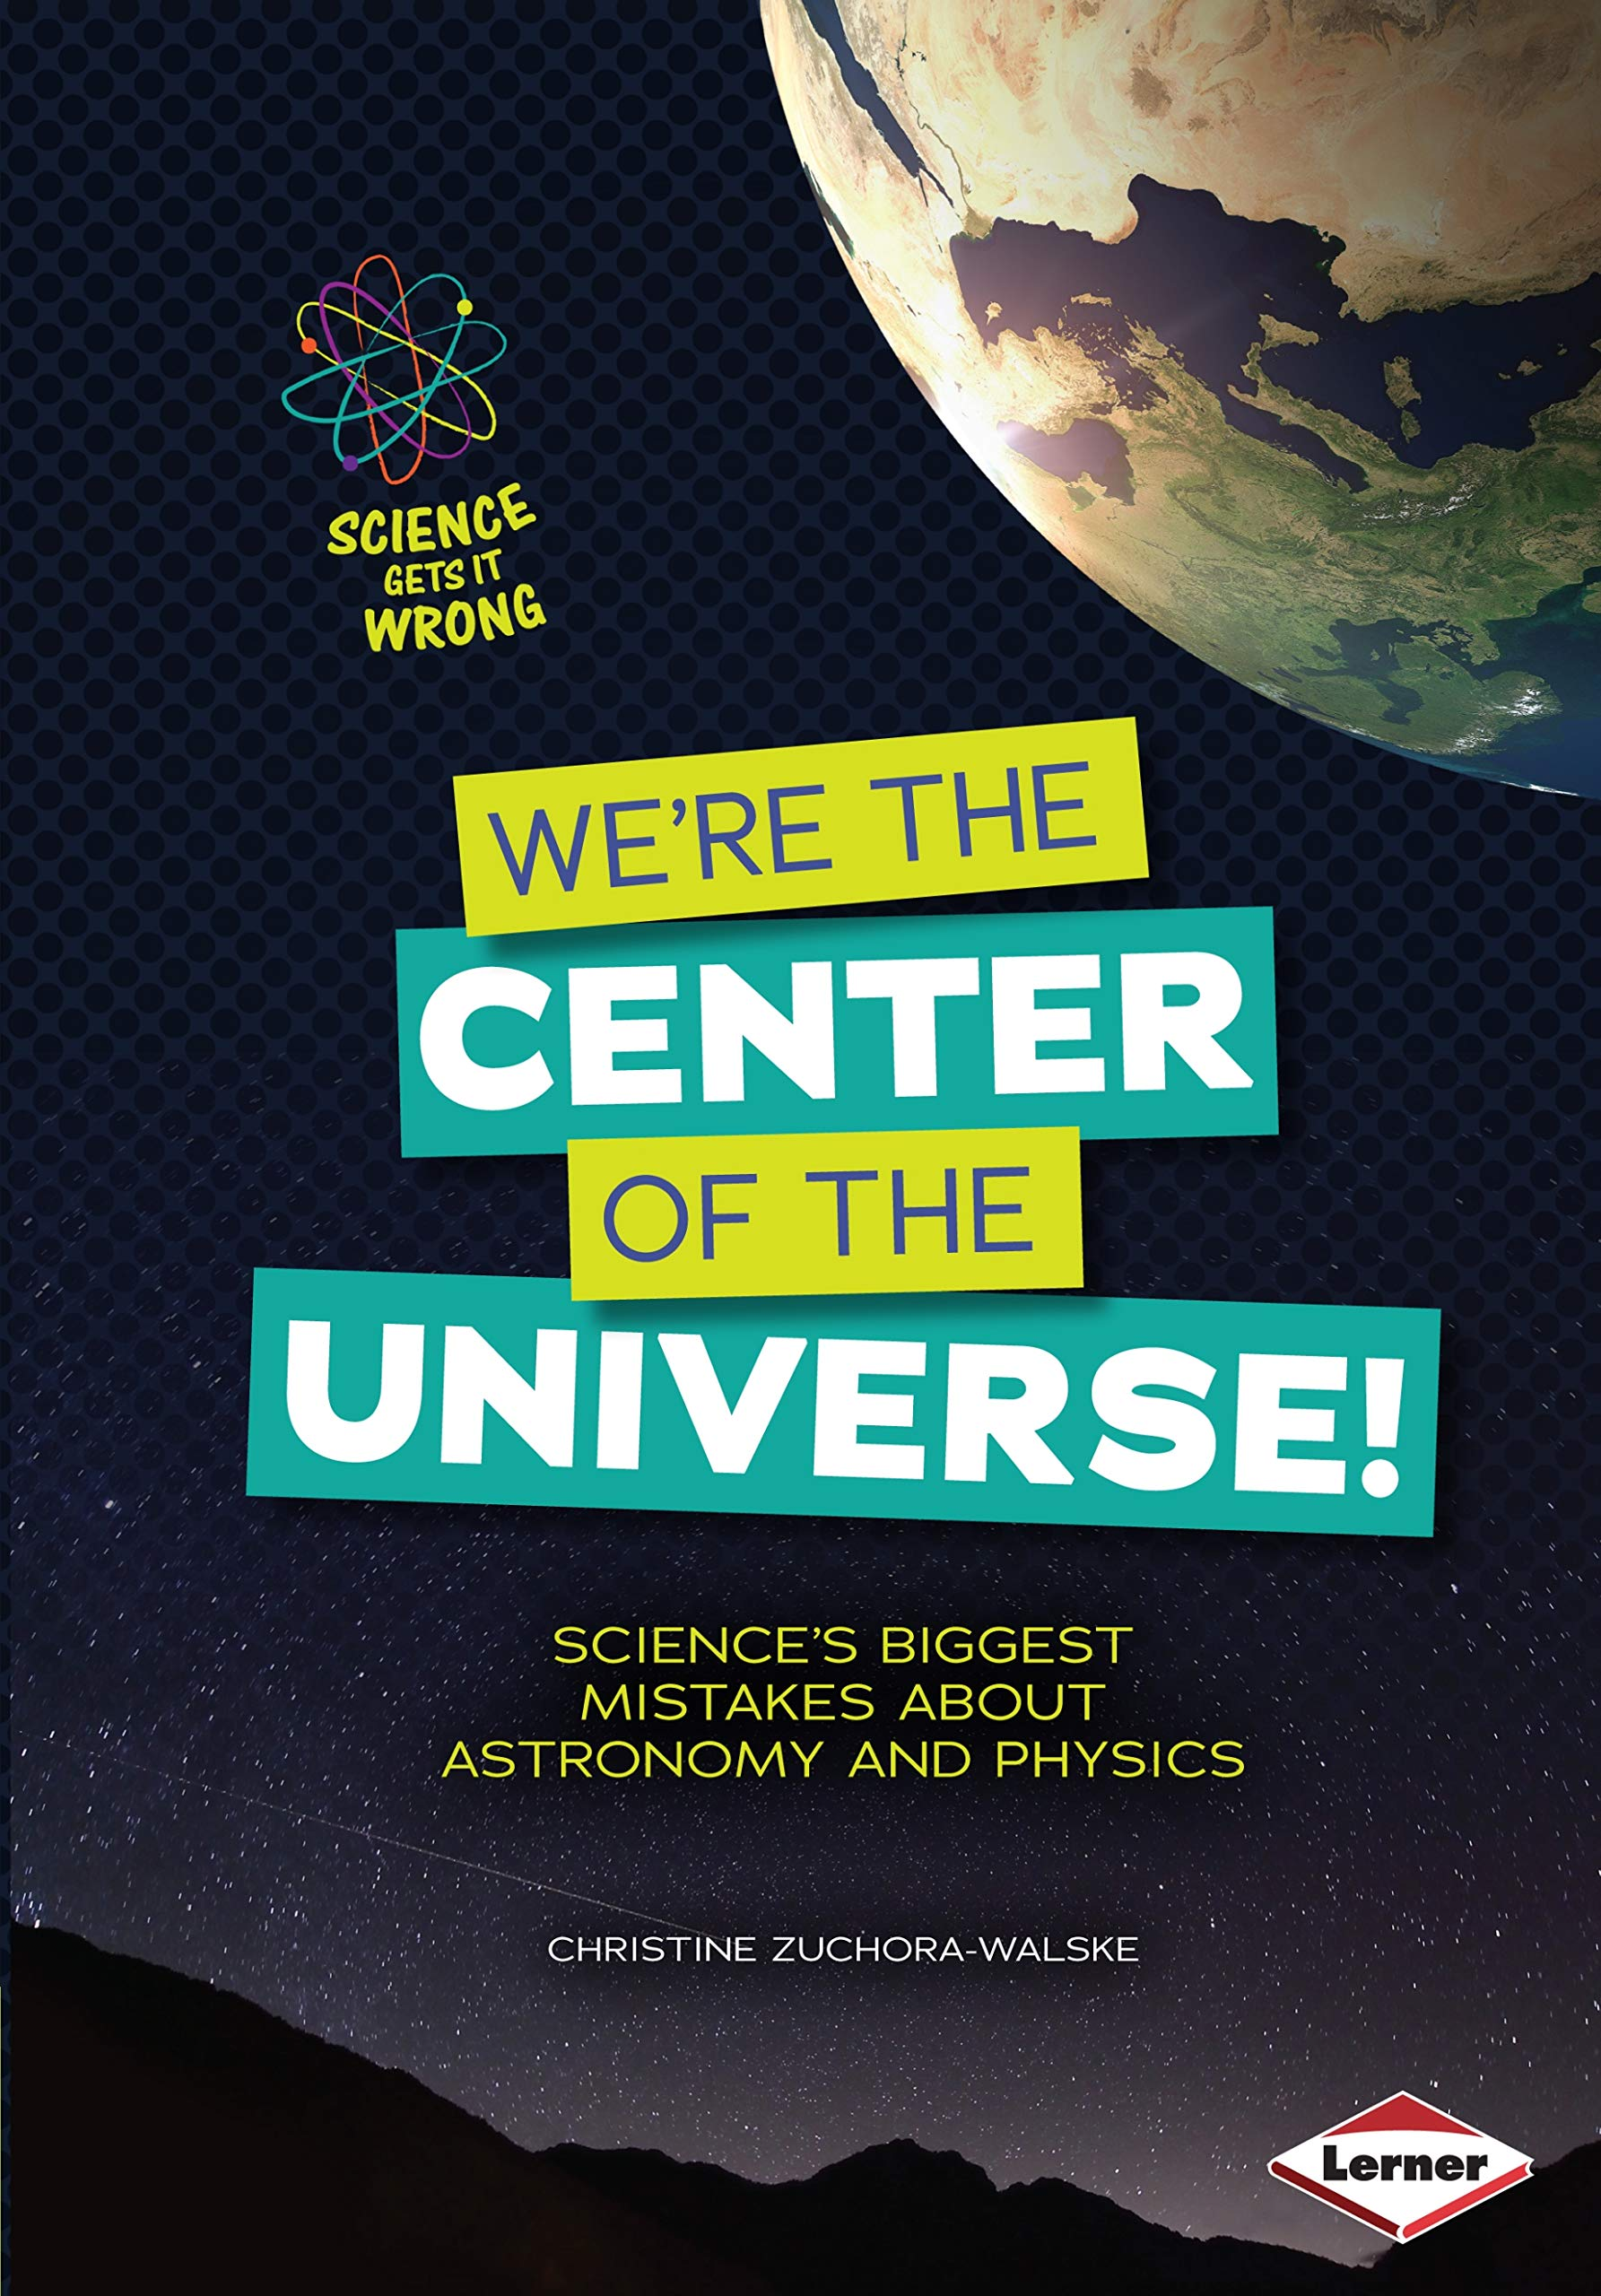 Download We''re the Center of the Universe!: Science's Biggest Mistakes About Astronomy and Physics (Science Gets It Wrong) ebook